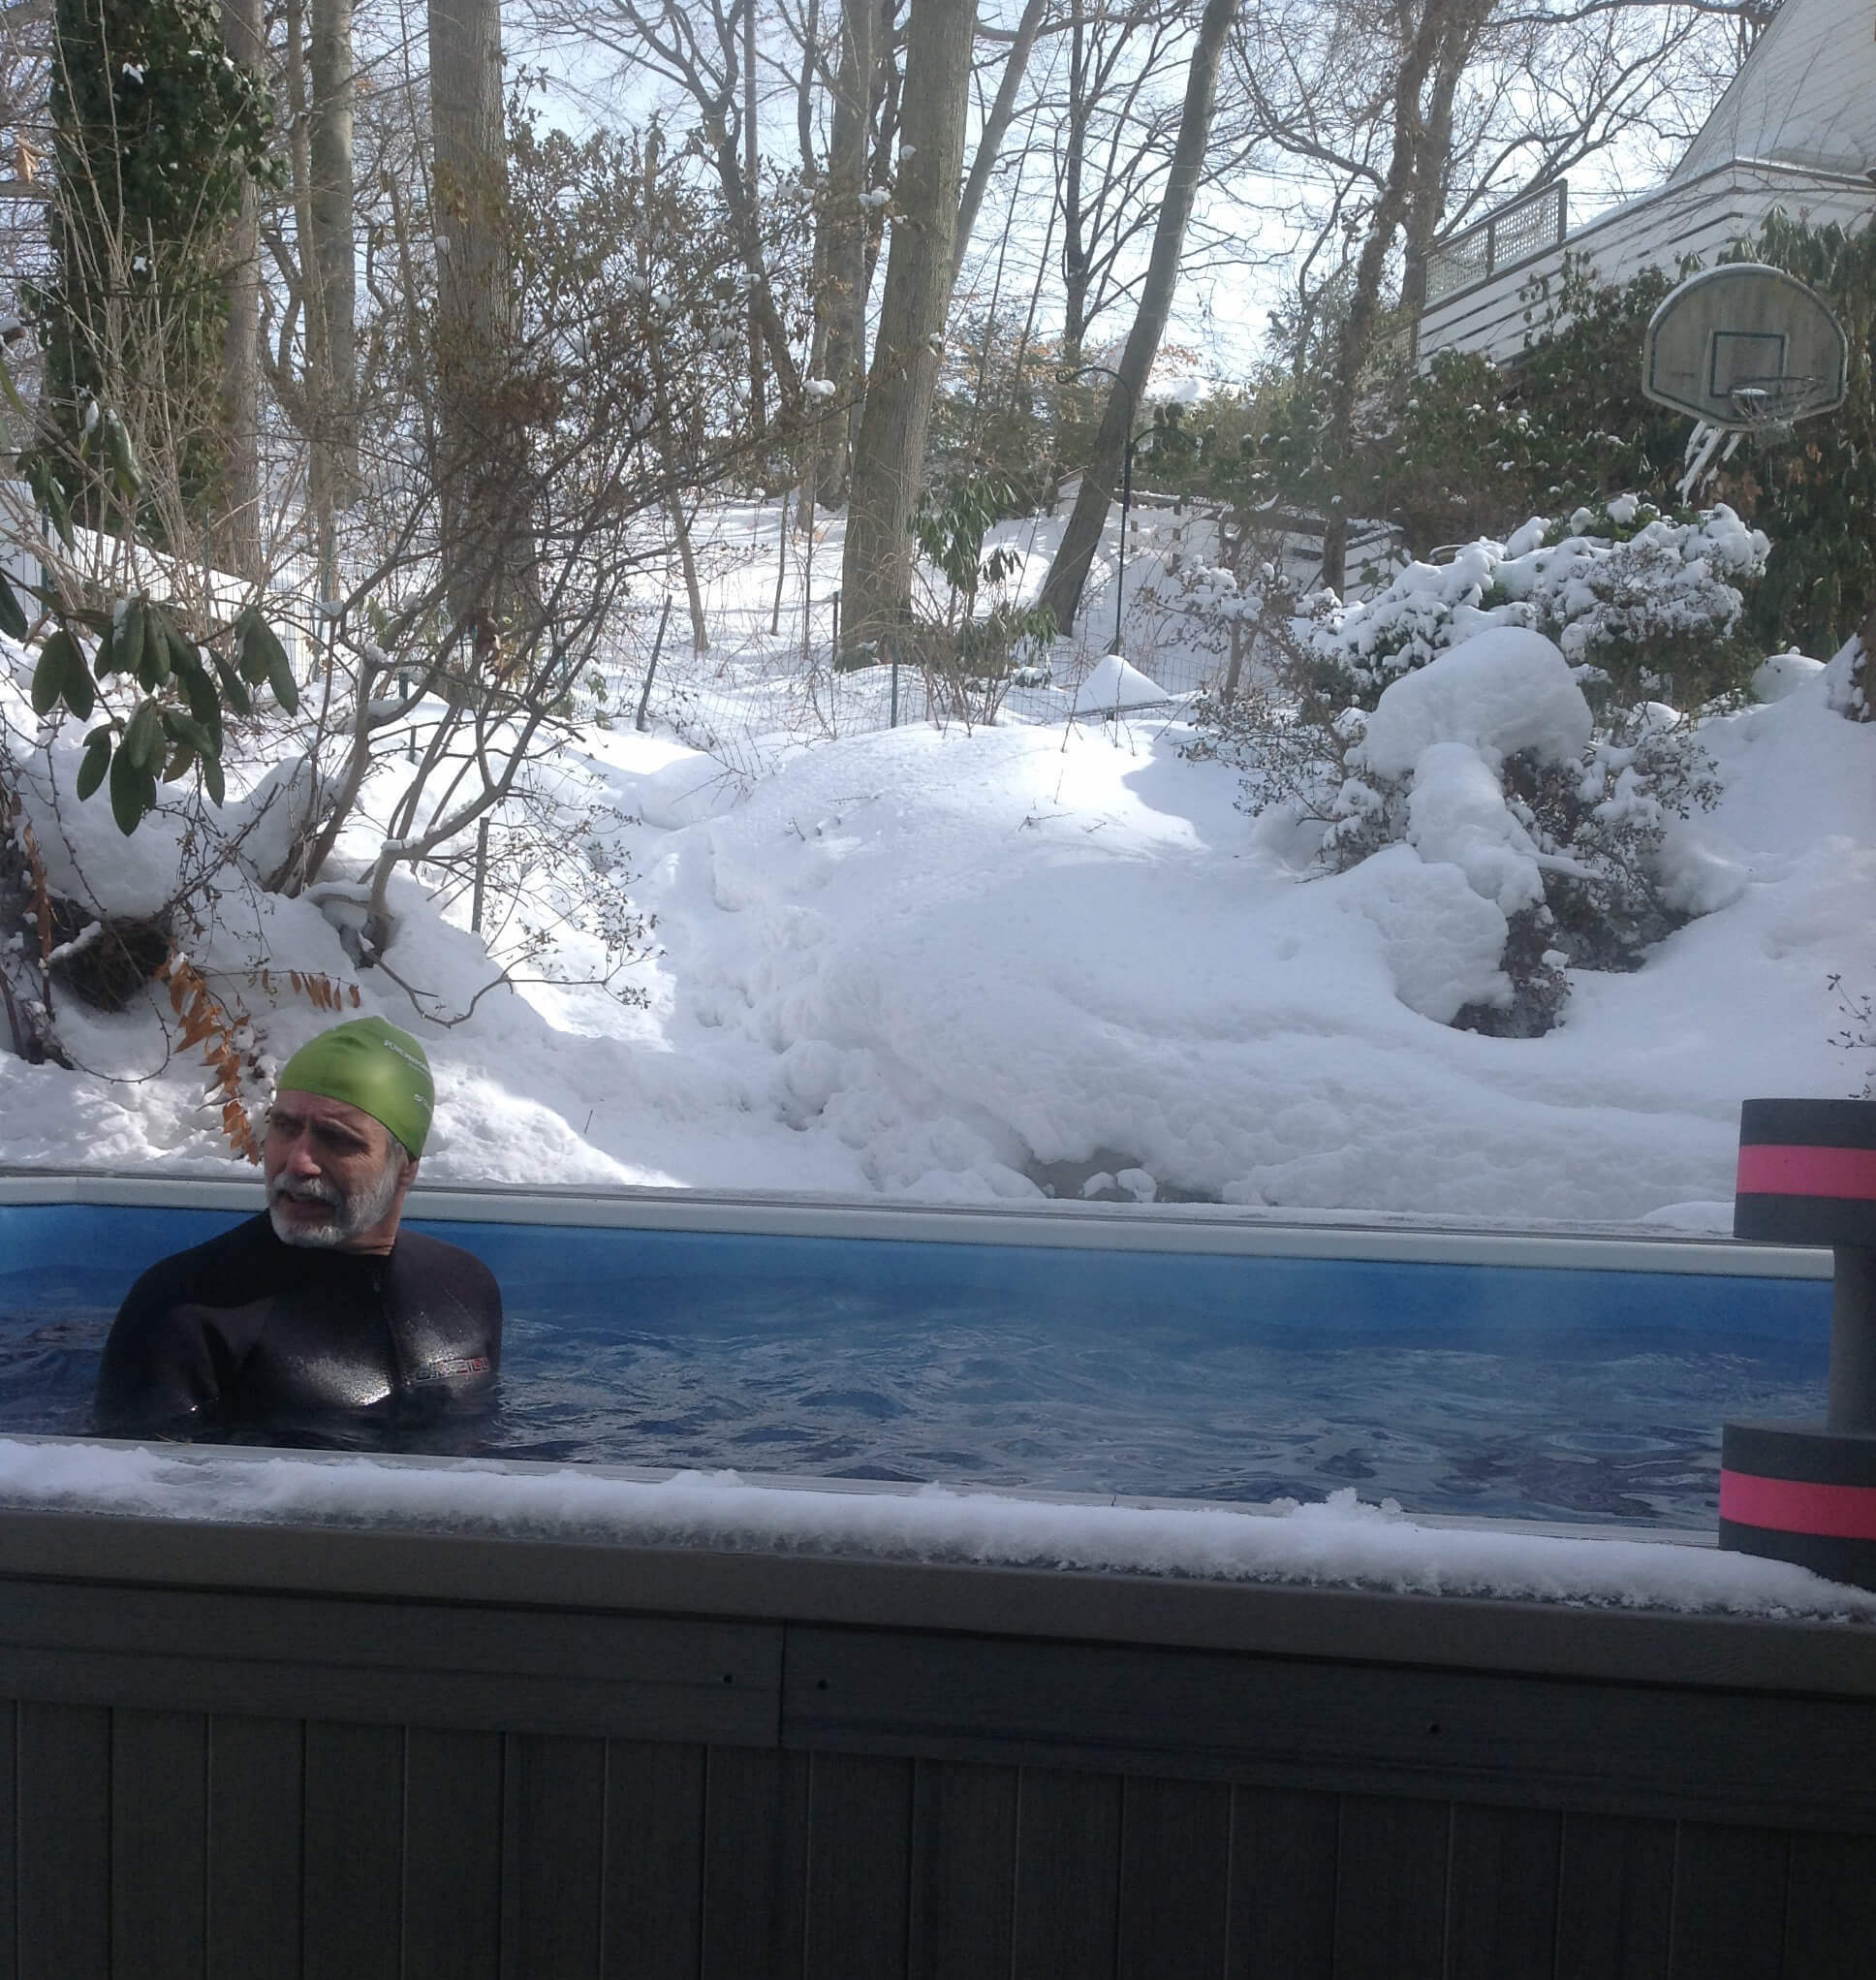 A swimmer in a wetsuit in the Endless Pools swimming machine after snowfall